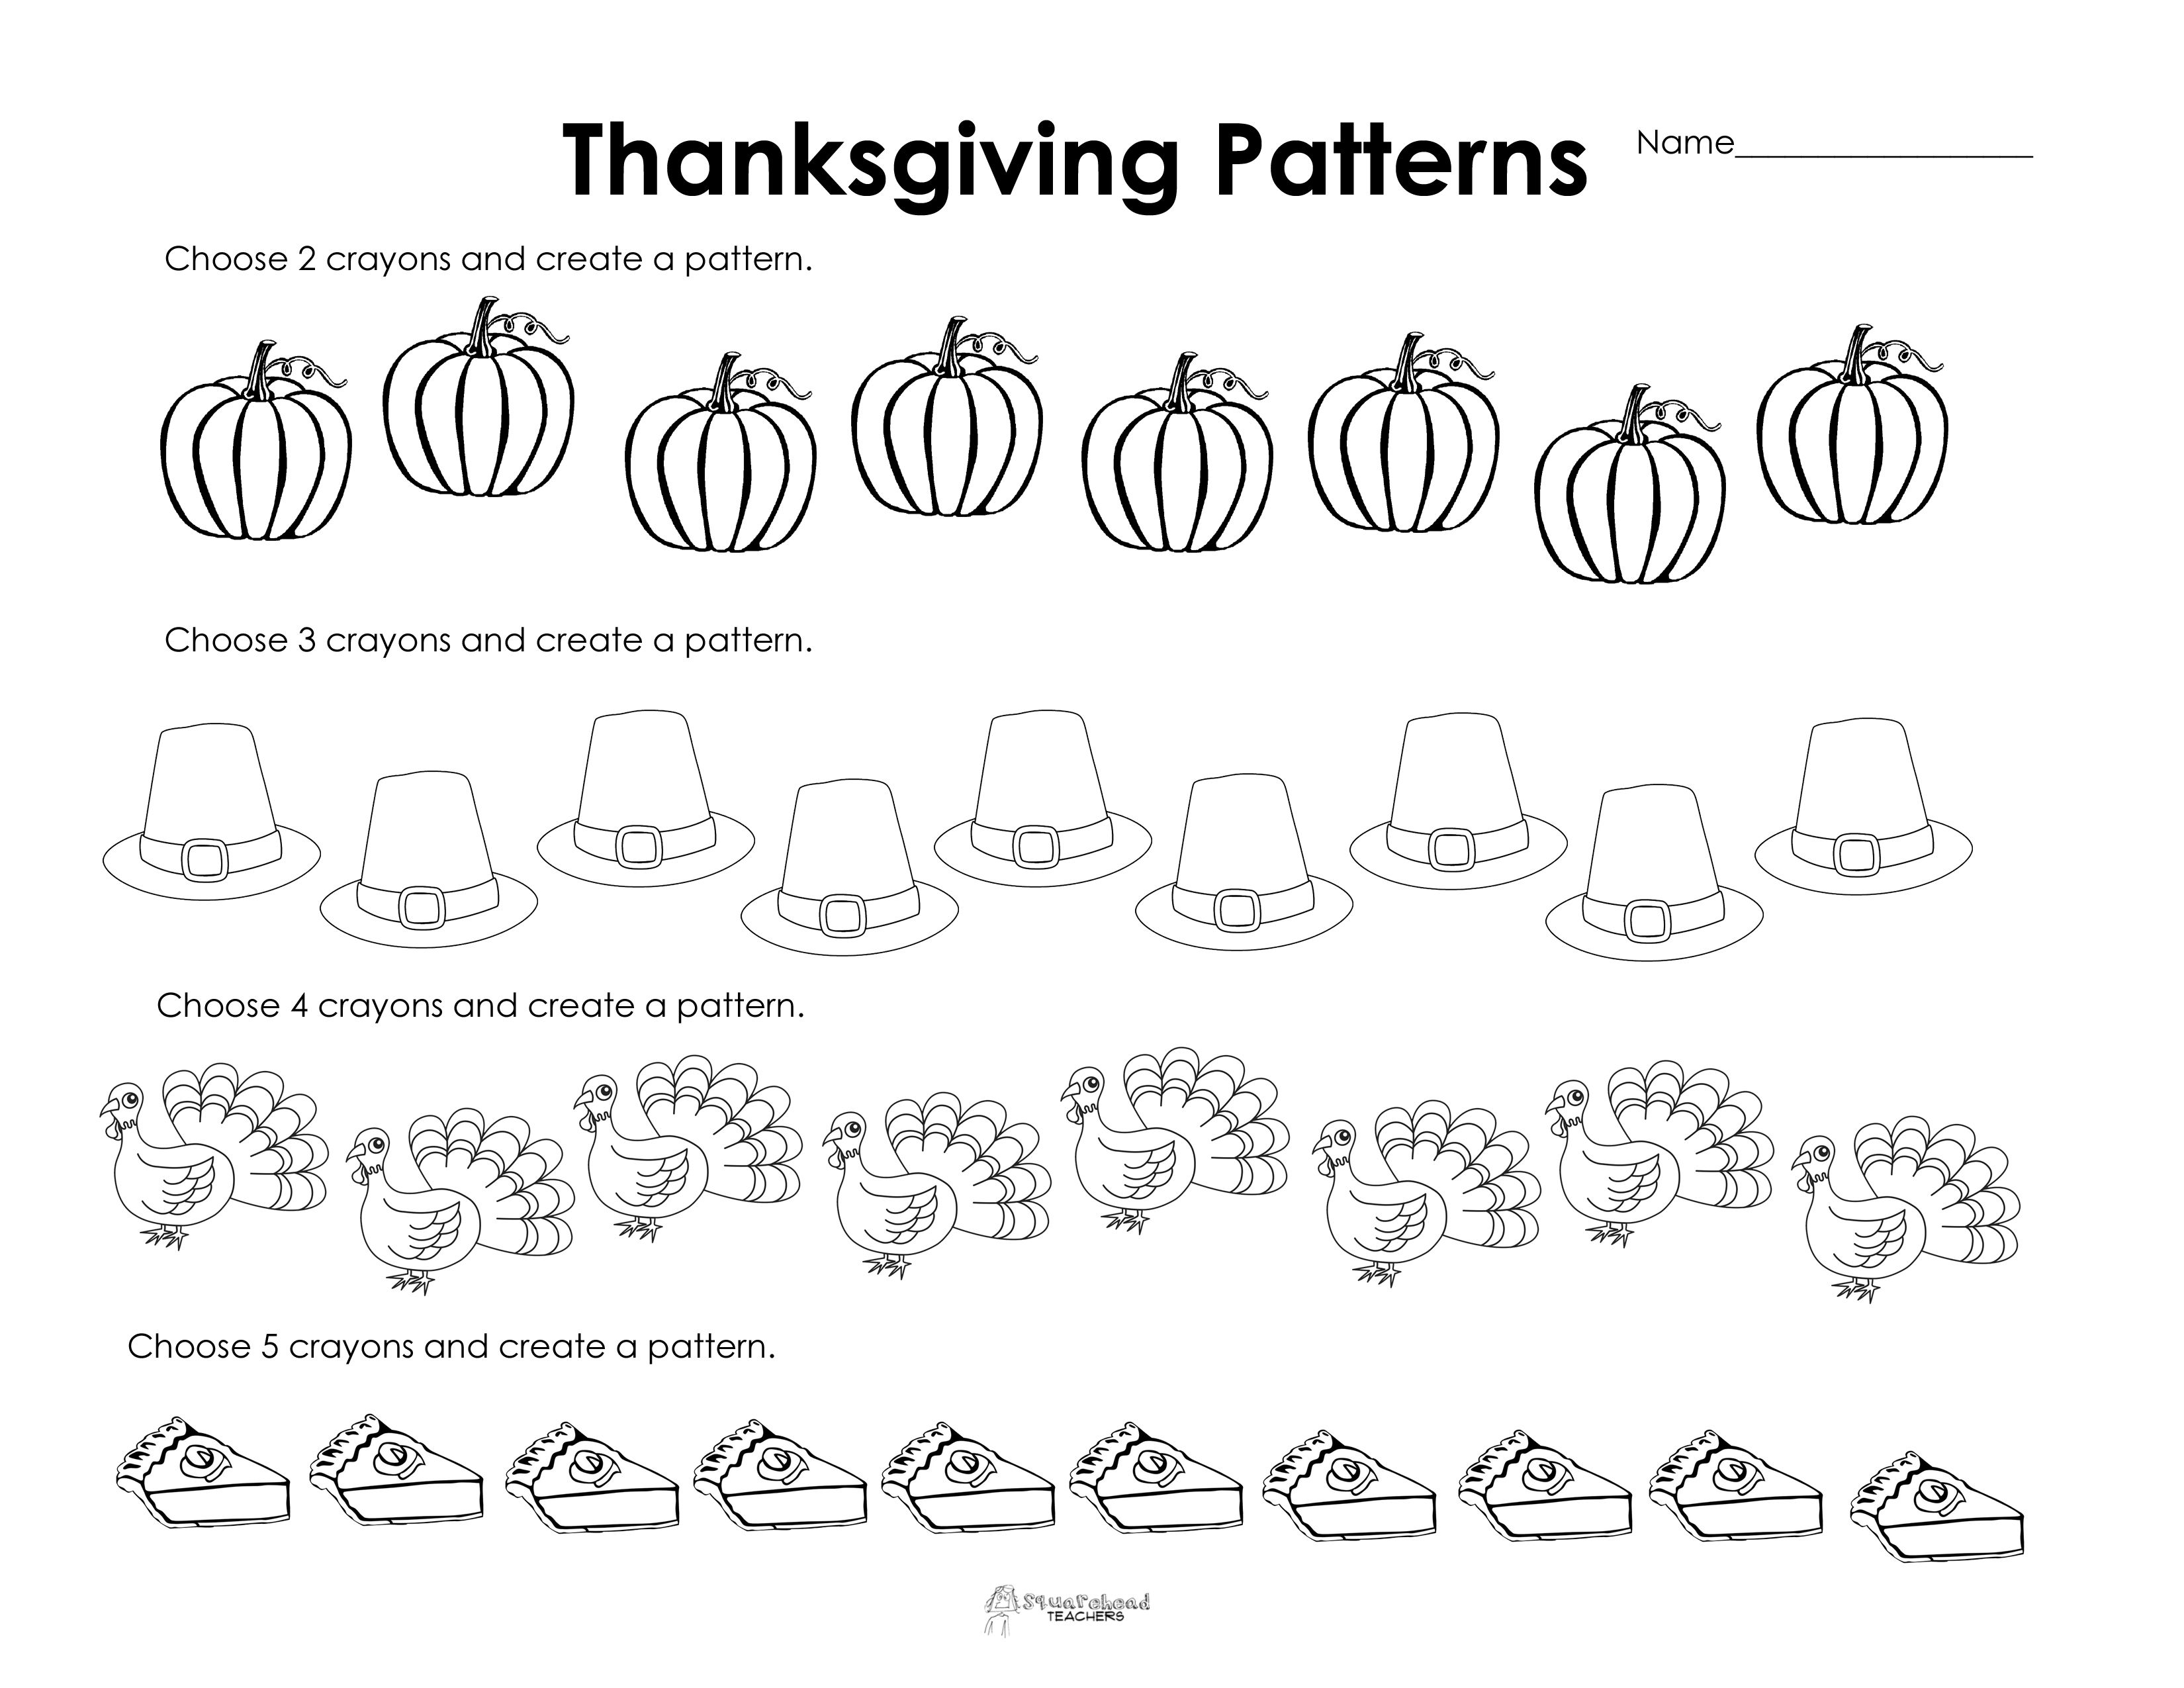 small resolution of Making Patterns: Thanksgiving Style (free worksheet!)   Thanksgiving  worksheets